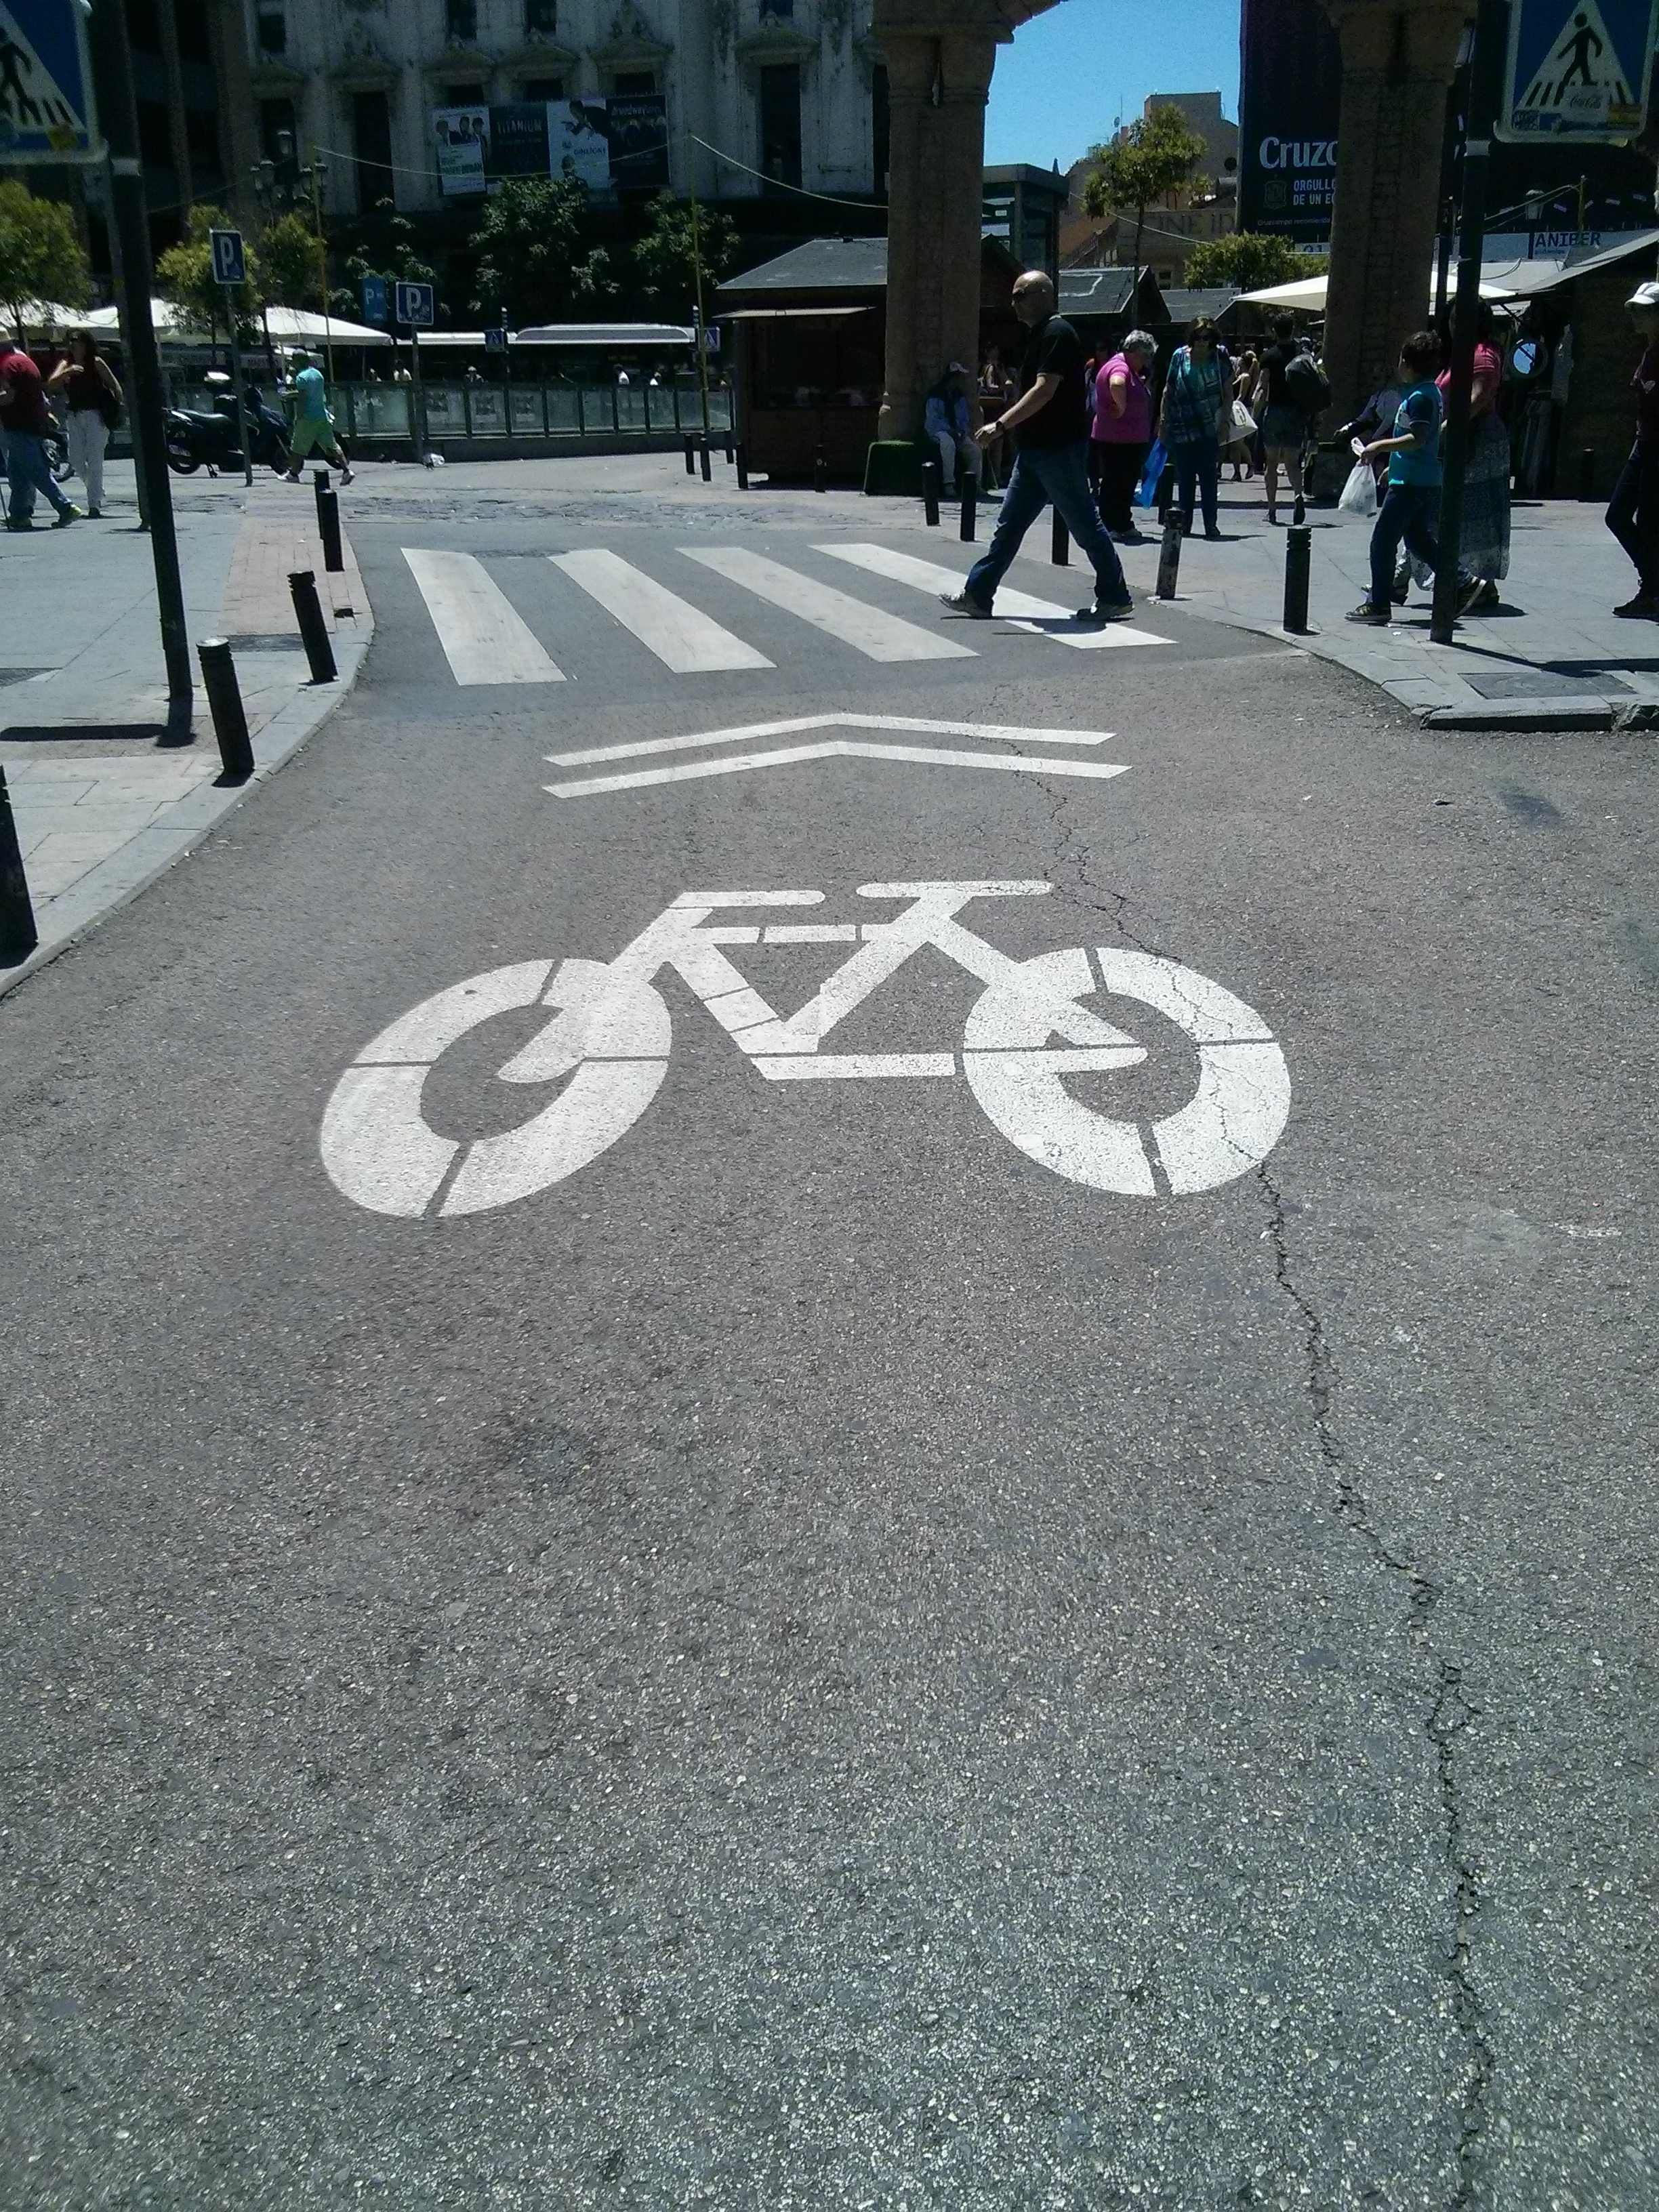 New Bike Symbols on Streets (Picture by Author)